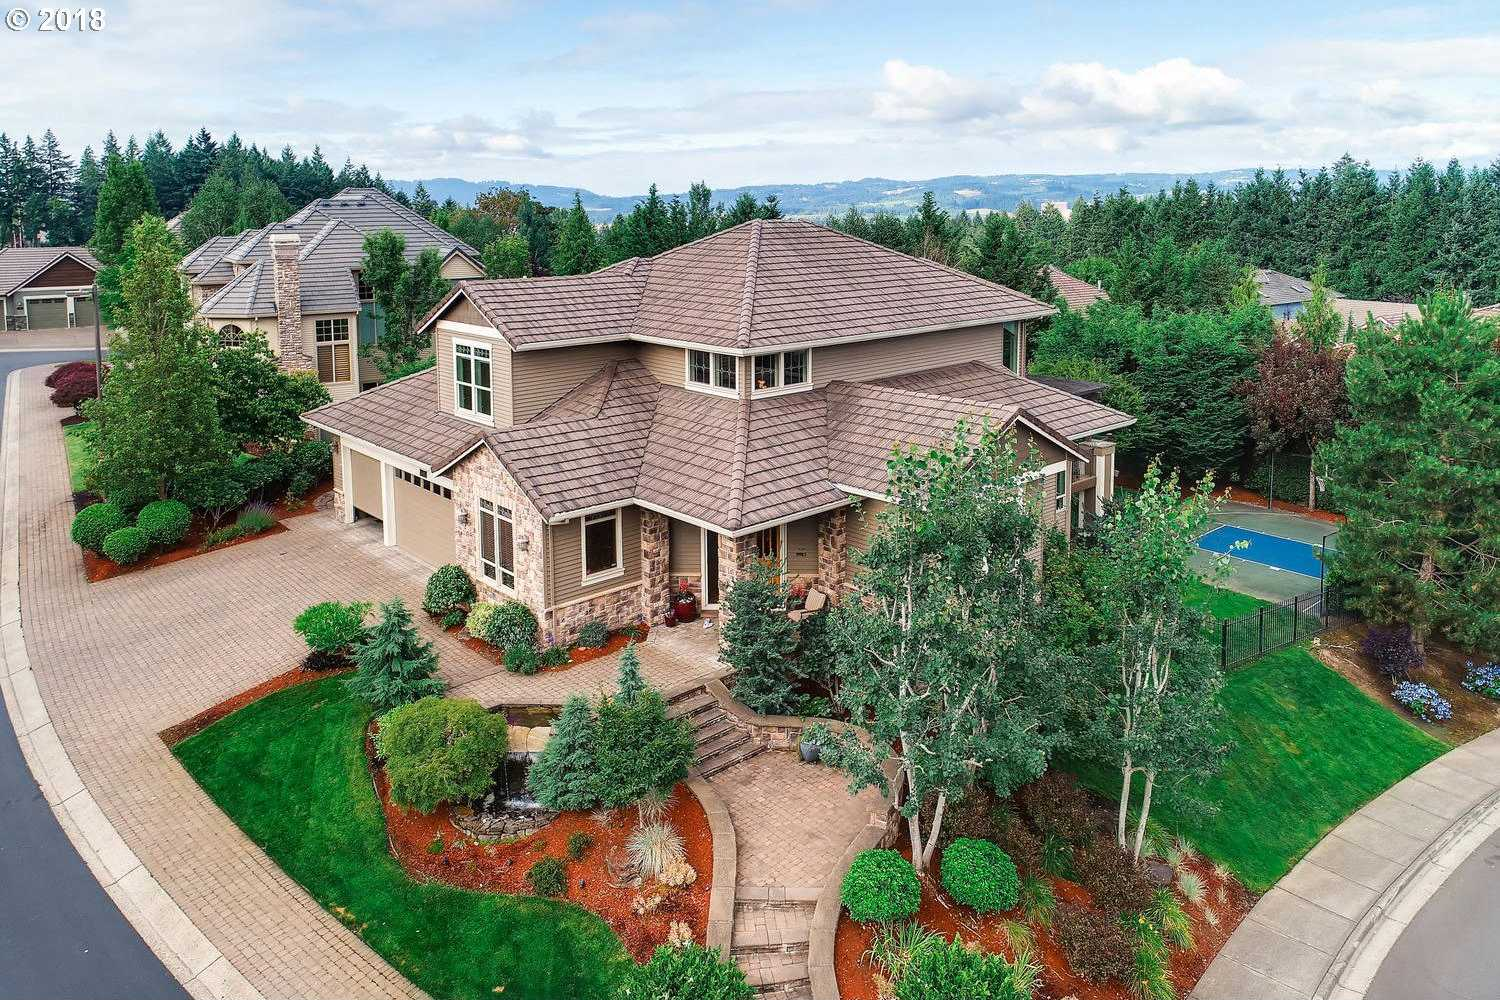 $1,200,000 - 5Br/4Ba -  for Sale in Bull Mountain, Tigard